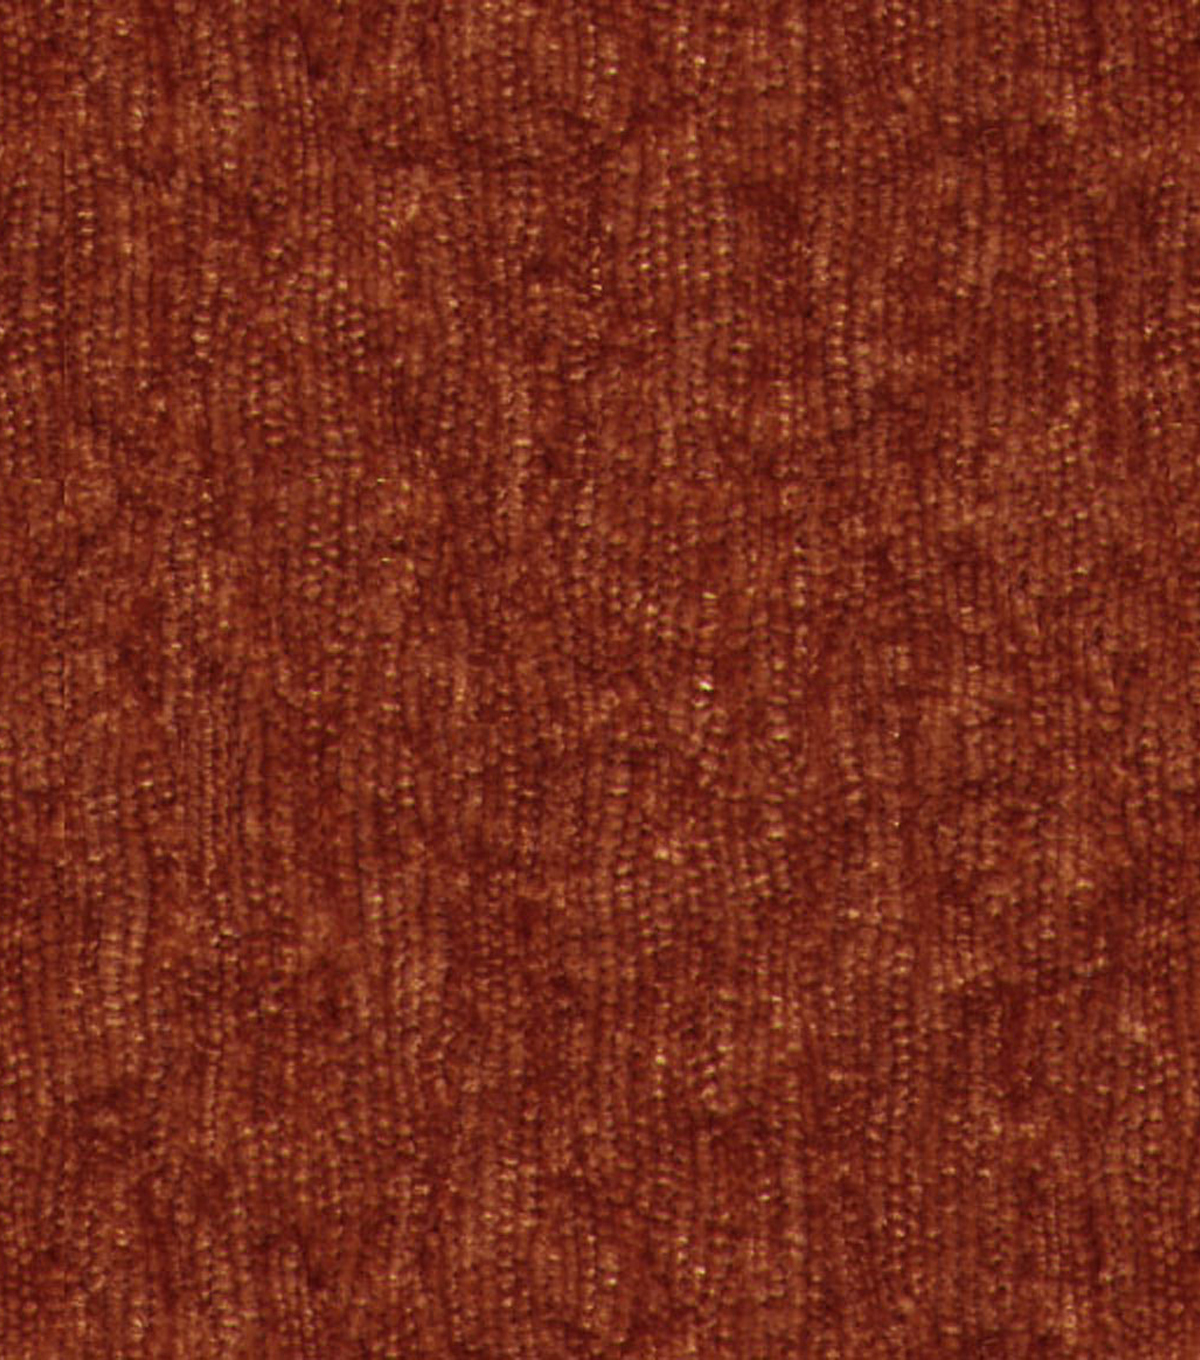 Home Decor 8\u0022x8\u0022 Fabric Swatch-Barrow M7281 5495 Wine